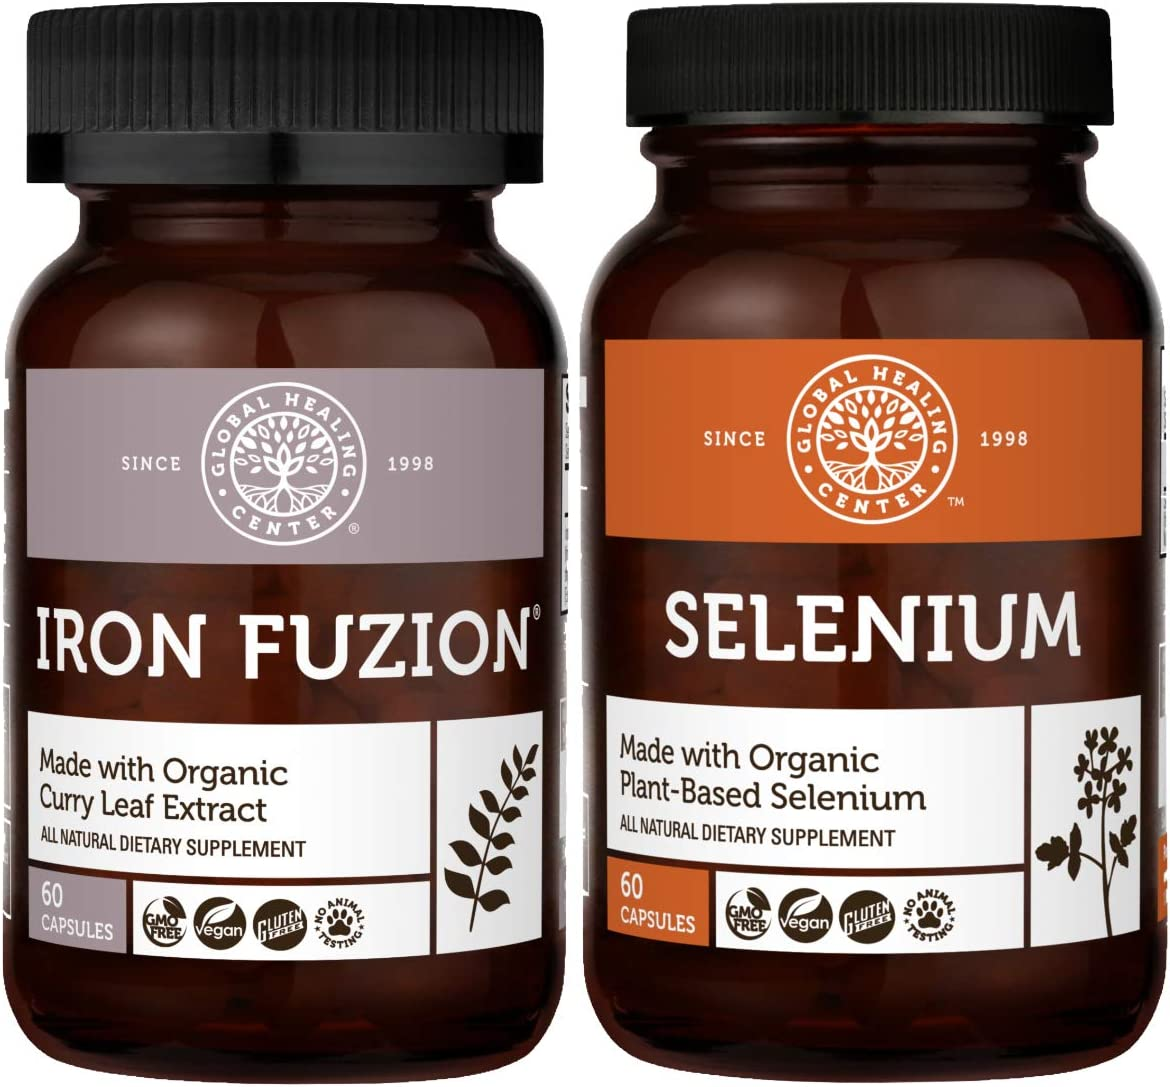 Global Healing Iron Fuzion & Selenium Kit - Vegan Supplement For Blood Builder Support and Natural Energy & Brain Health and Antioxidant For Thyroid Support & Immune System Health - 120 Capsules Total